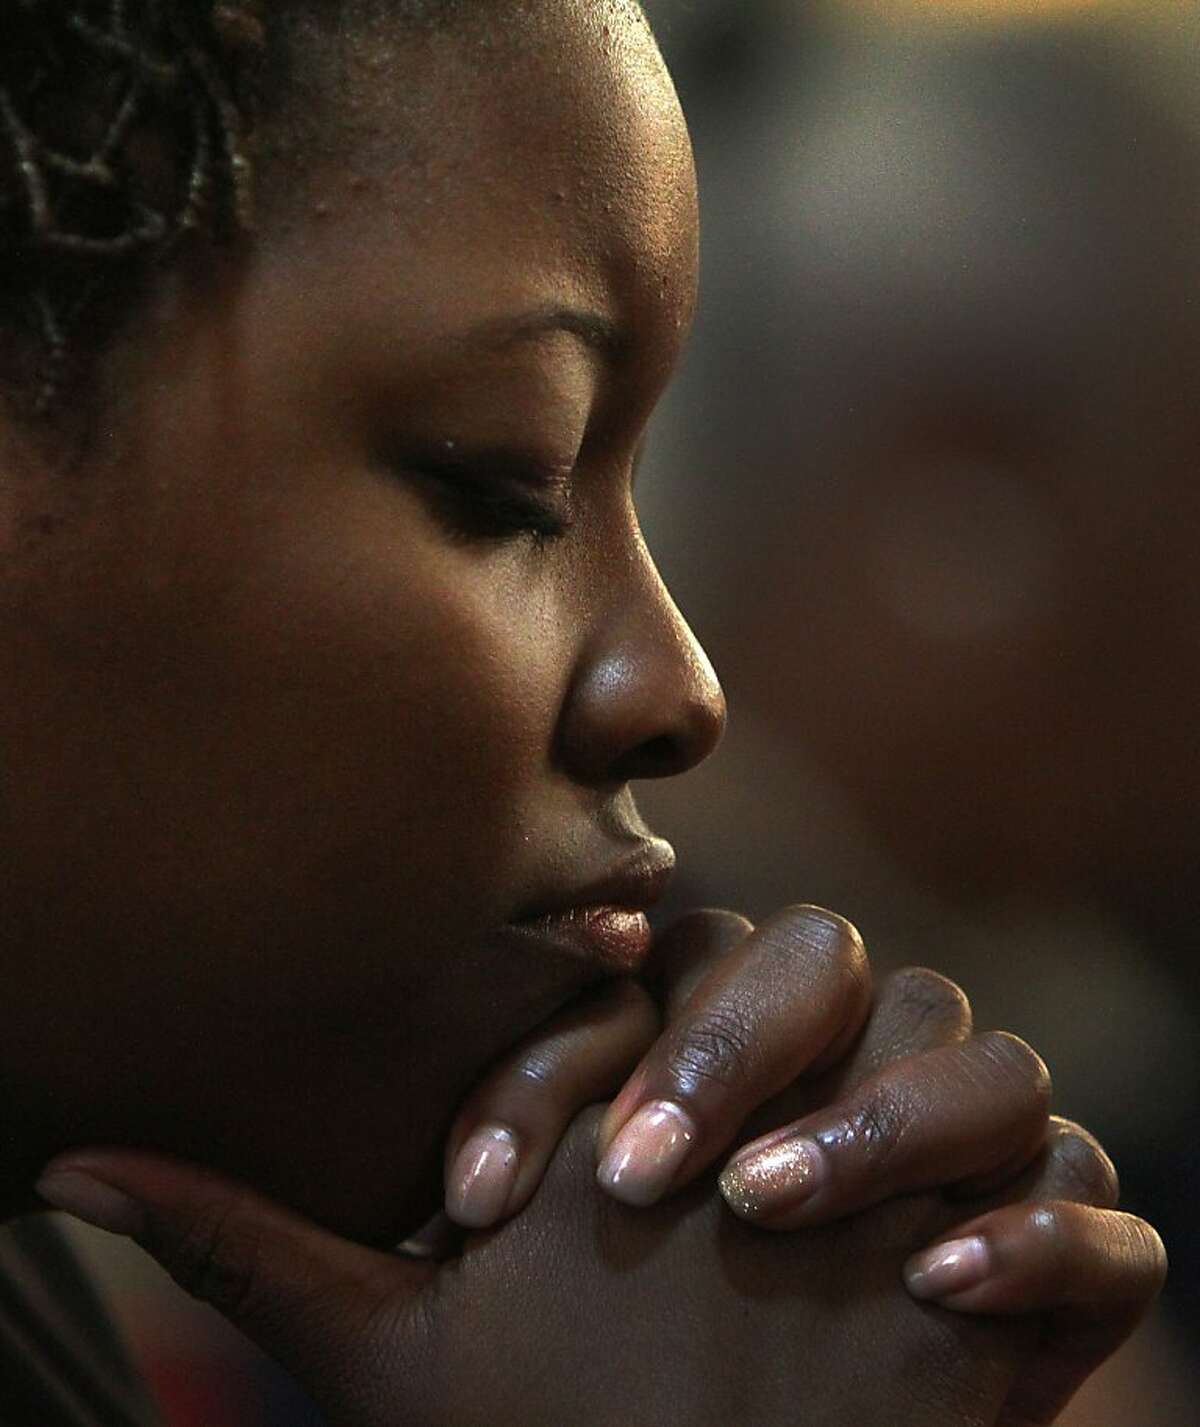 Sh'Nese Townsend of Birmimngham, Ala., prays during a memorial service at the 16th Street Baptist Church in Birmingham, Ala., Sunday, Sept. 15, 2013. The church held a ceremony honoring the memory of the four young girls who were killed by a bomb placed outside the church 50 years ago by members of the Ku Klux Klan. (AP Photo/Hal Yeager)